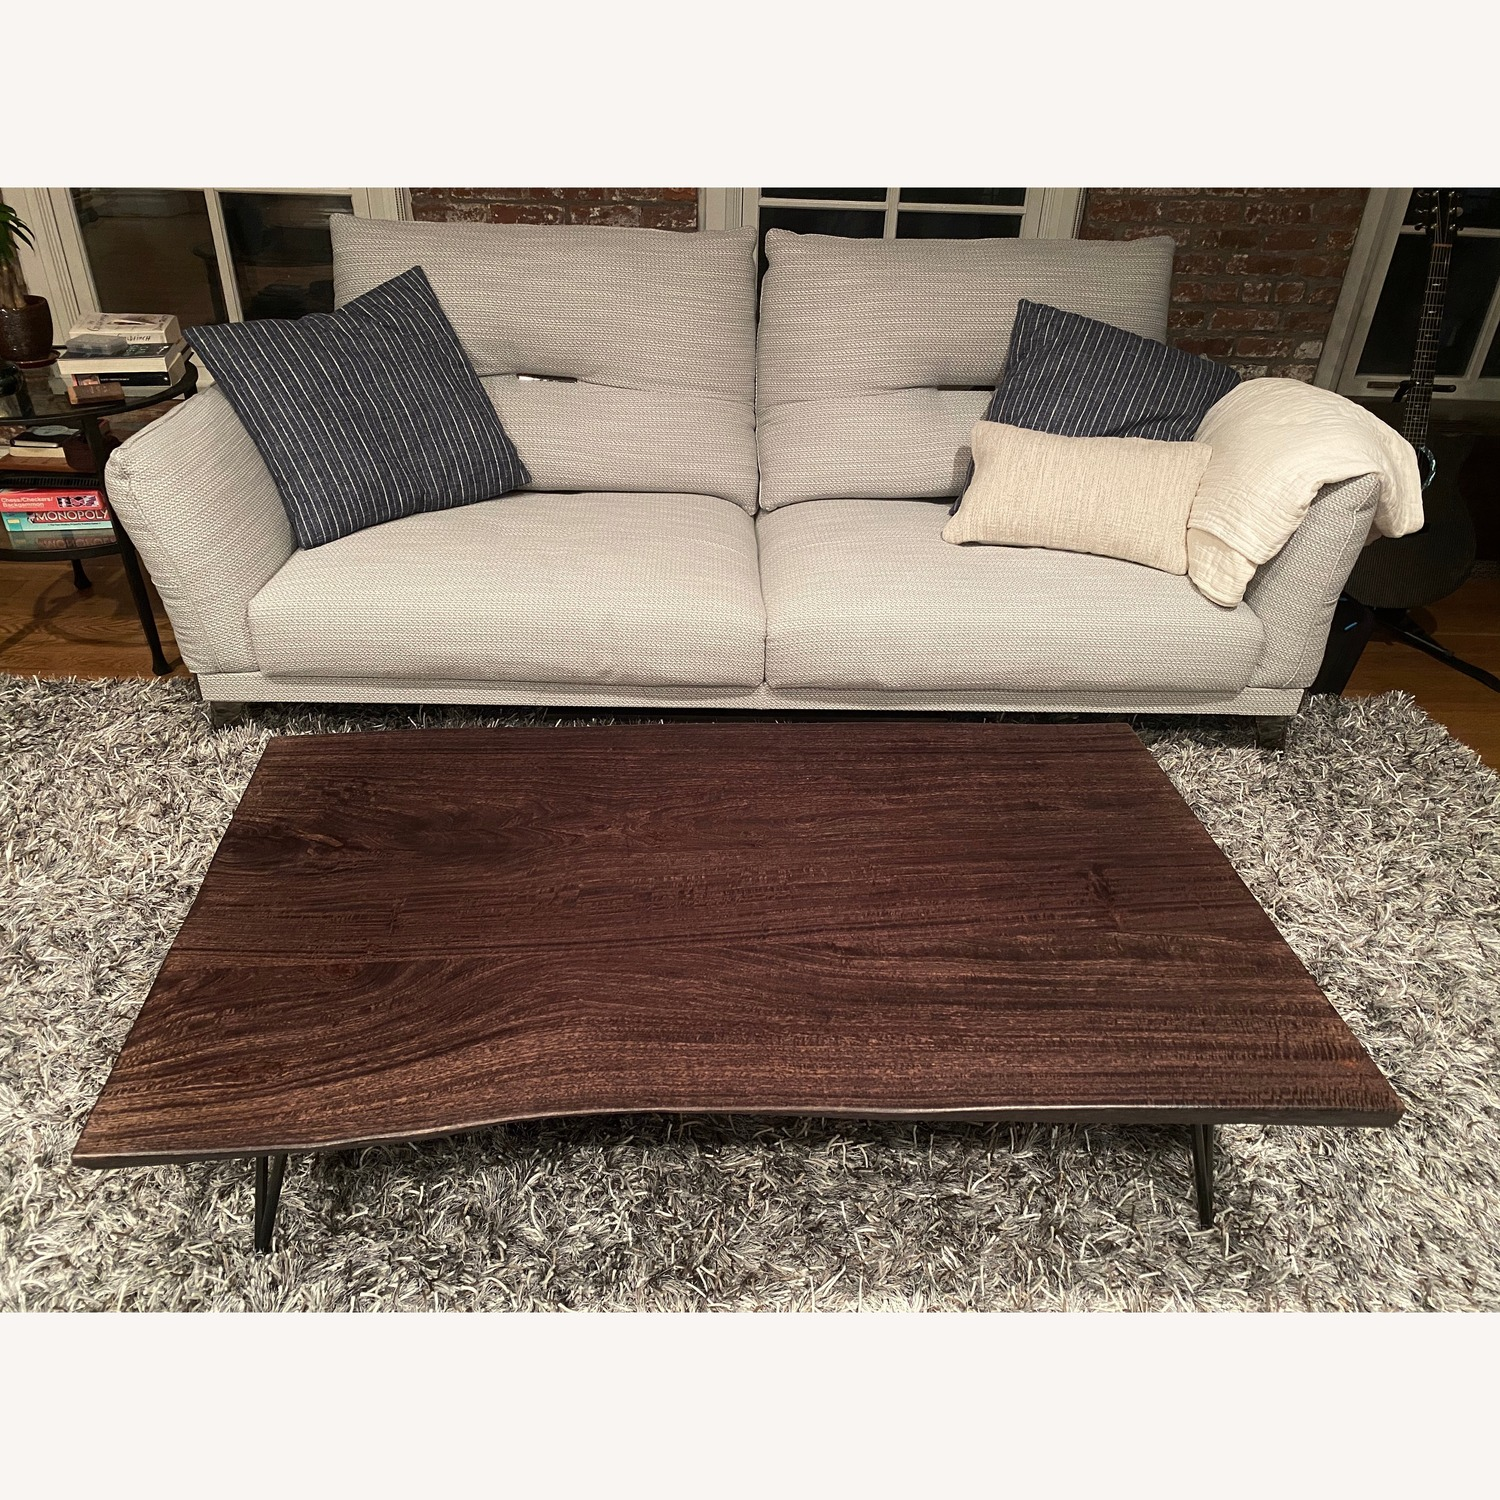 From The Source Live Edge Coffee Table - image-2